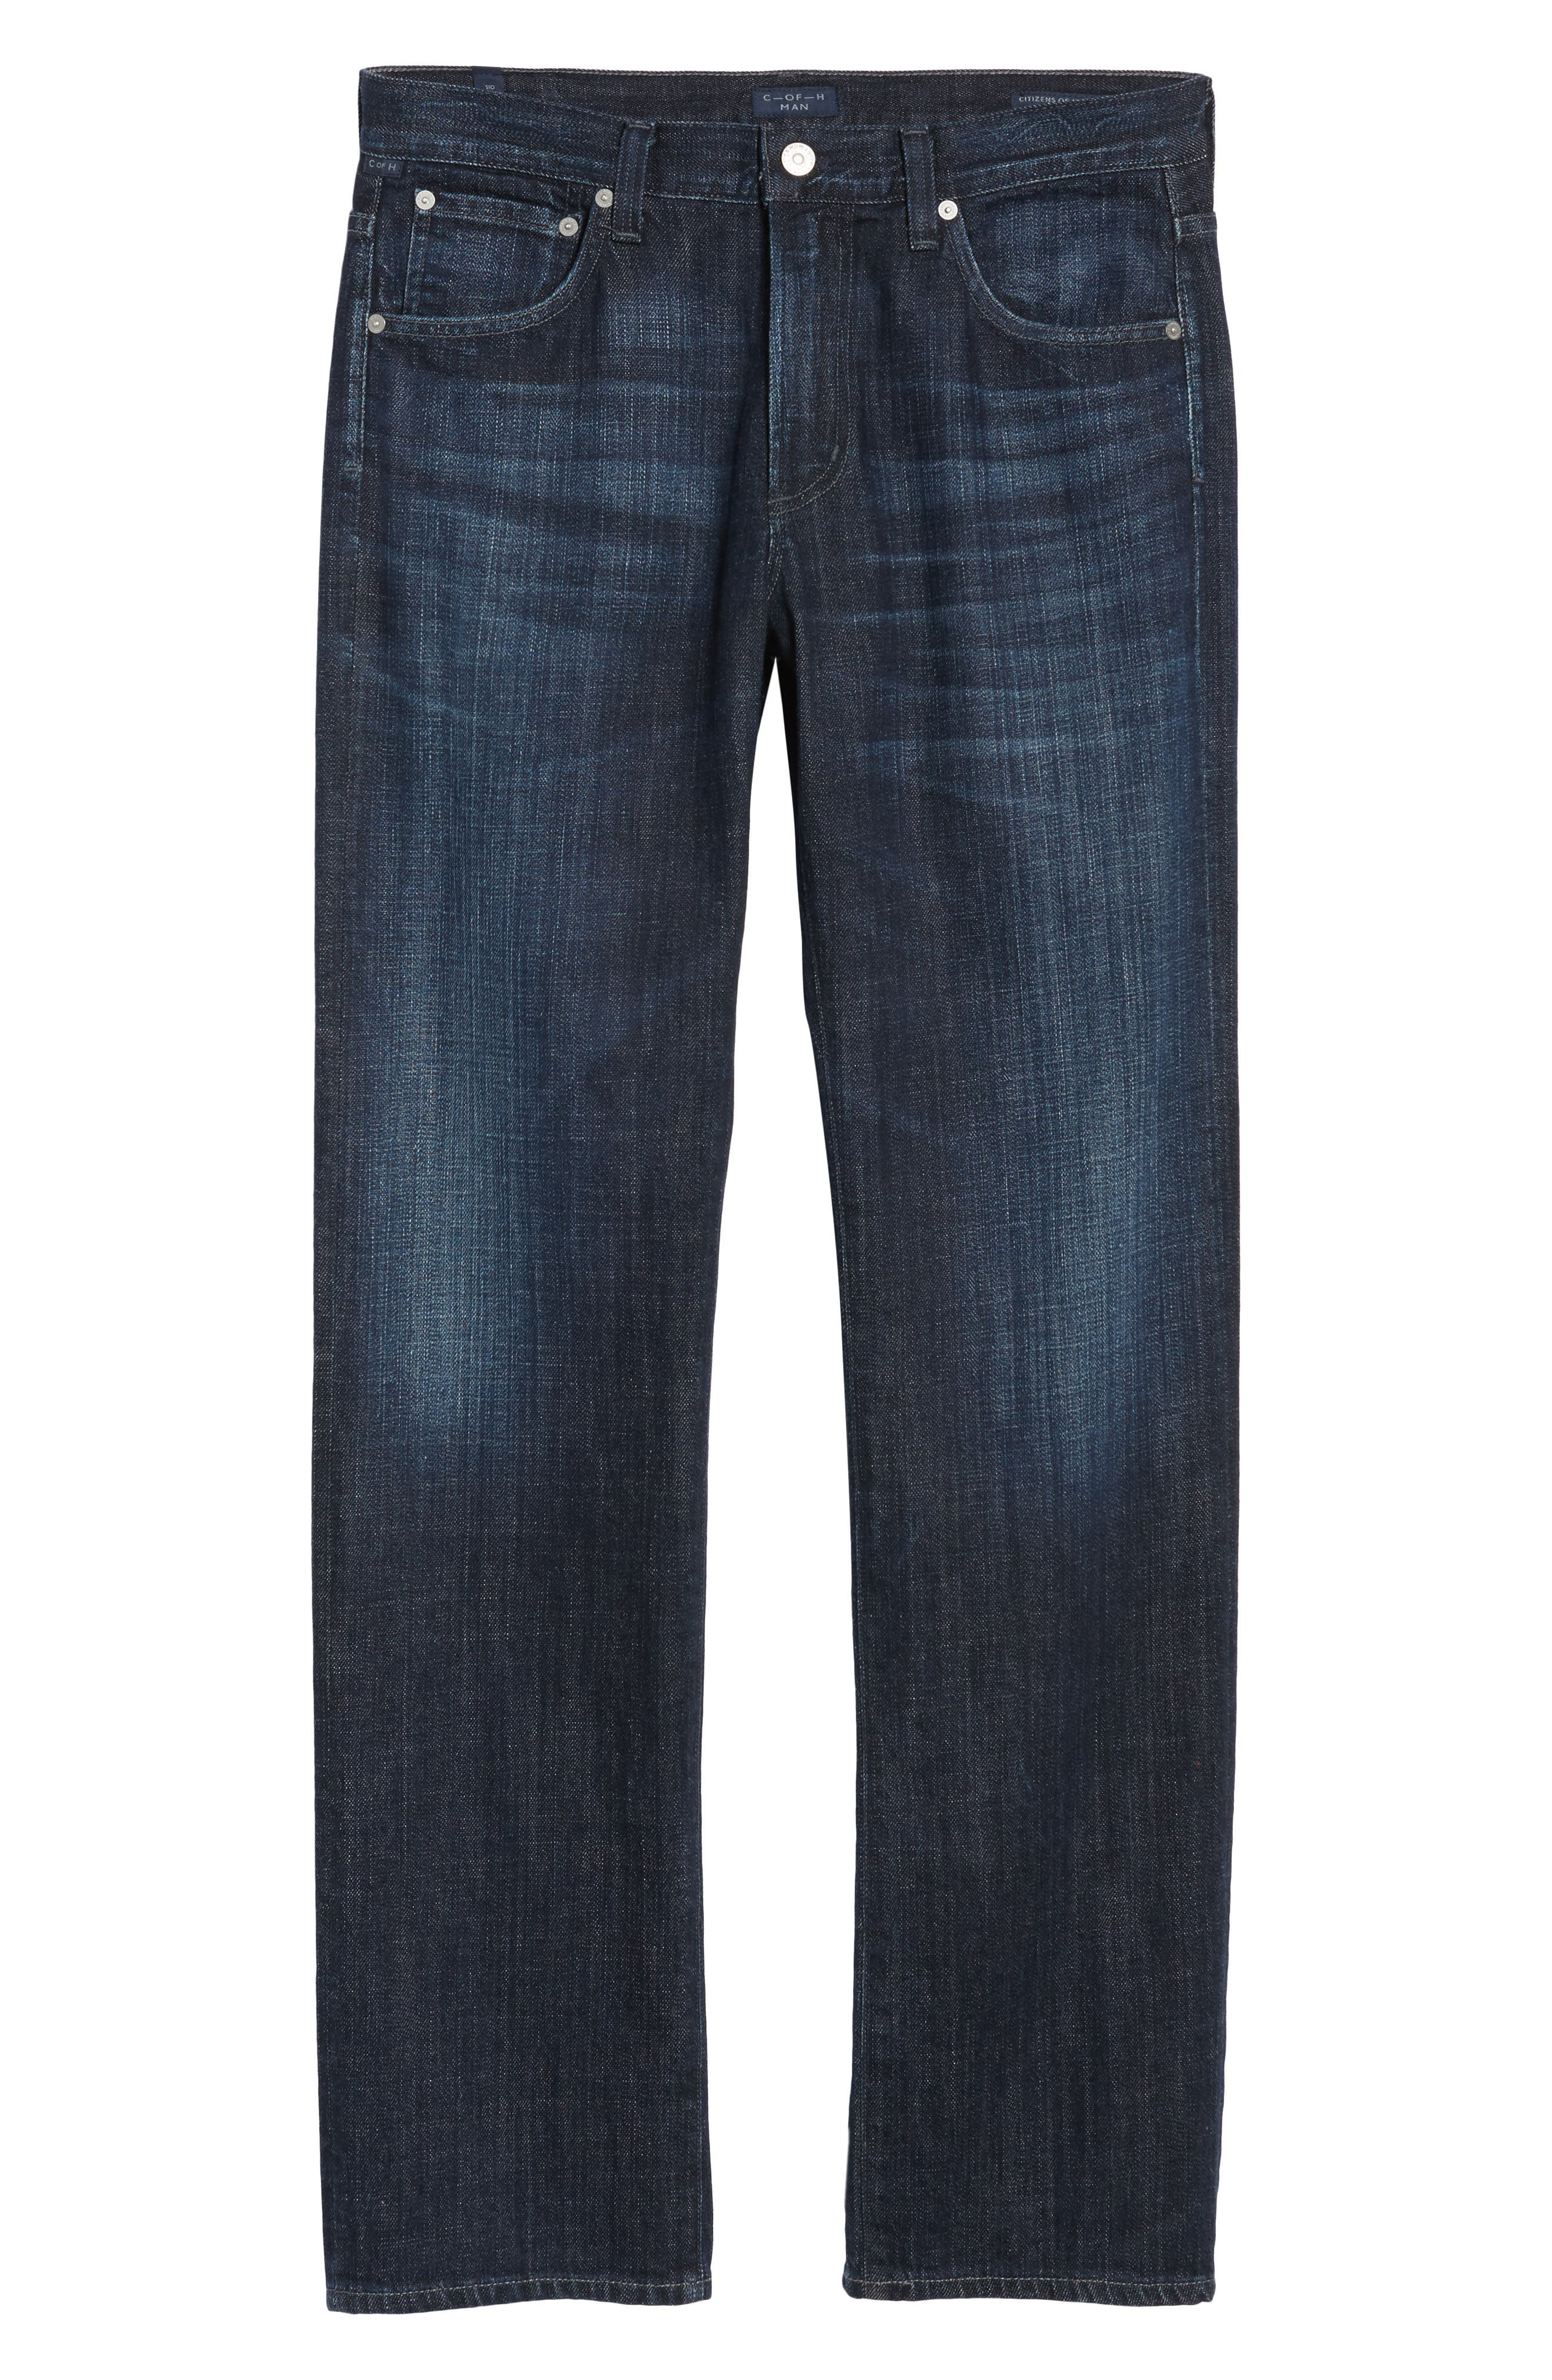 Sid Straight Leg Jeans,                             Alternate thumbnail 6, color,                             Pierson